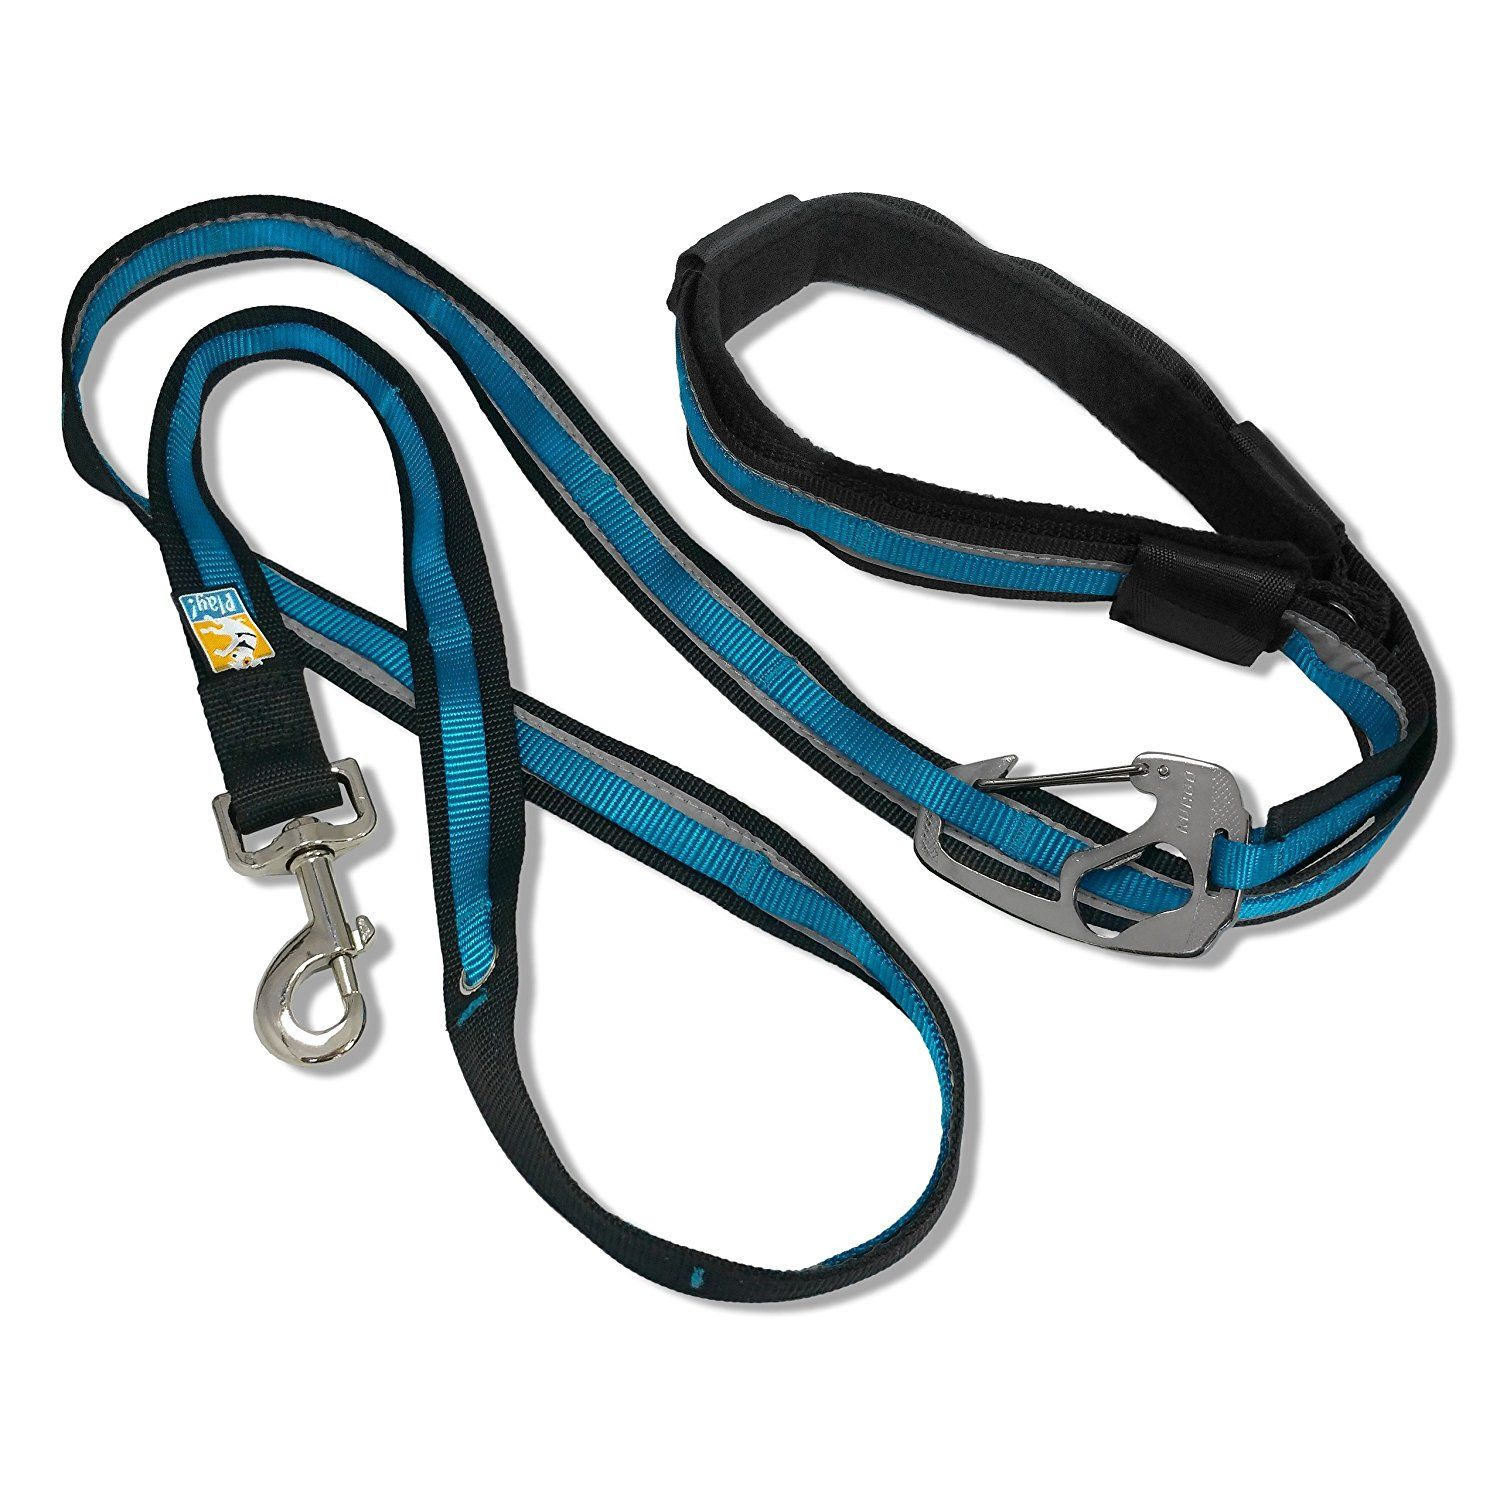 Kurgo Reflective 6-in-1 Quantum Dog Leash ** Don't get left behind, see this great dog product : Dog leash